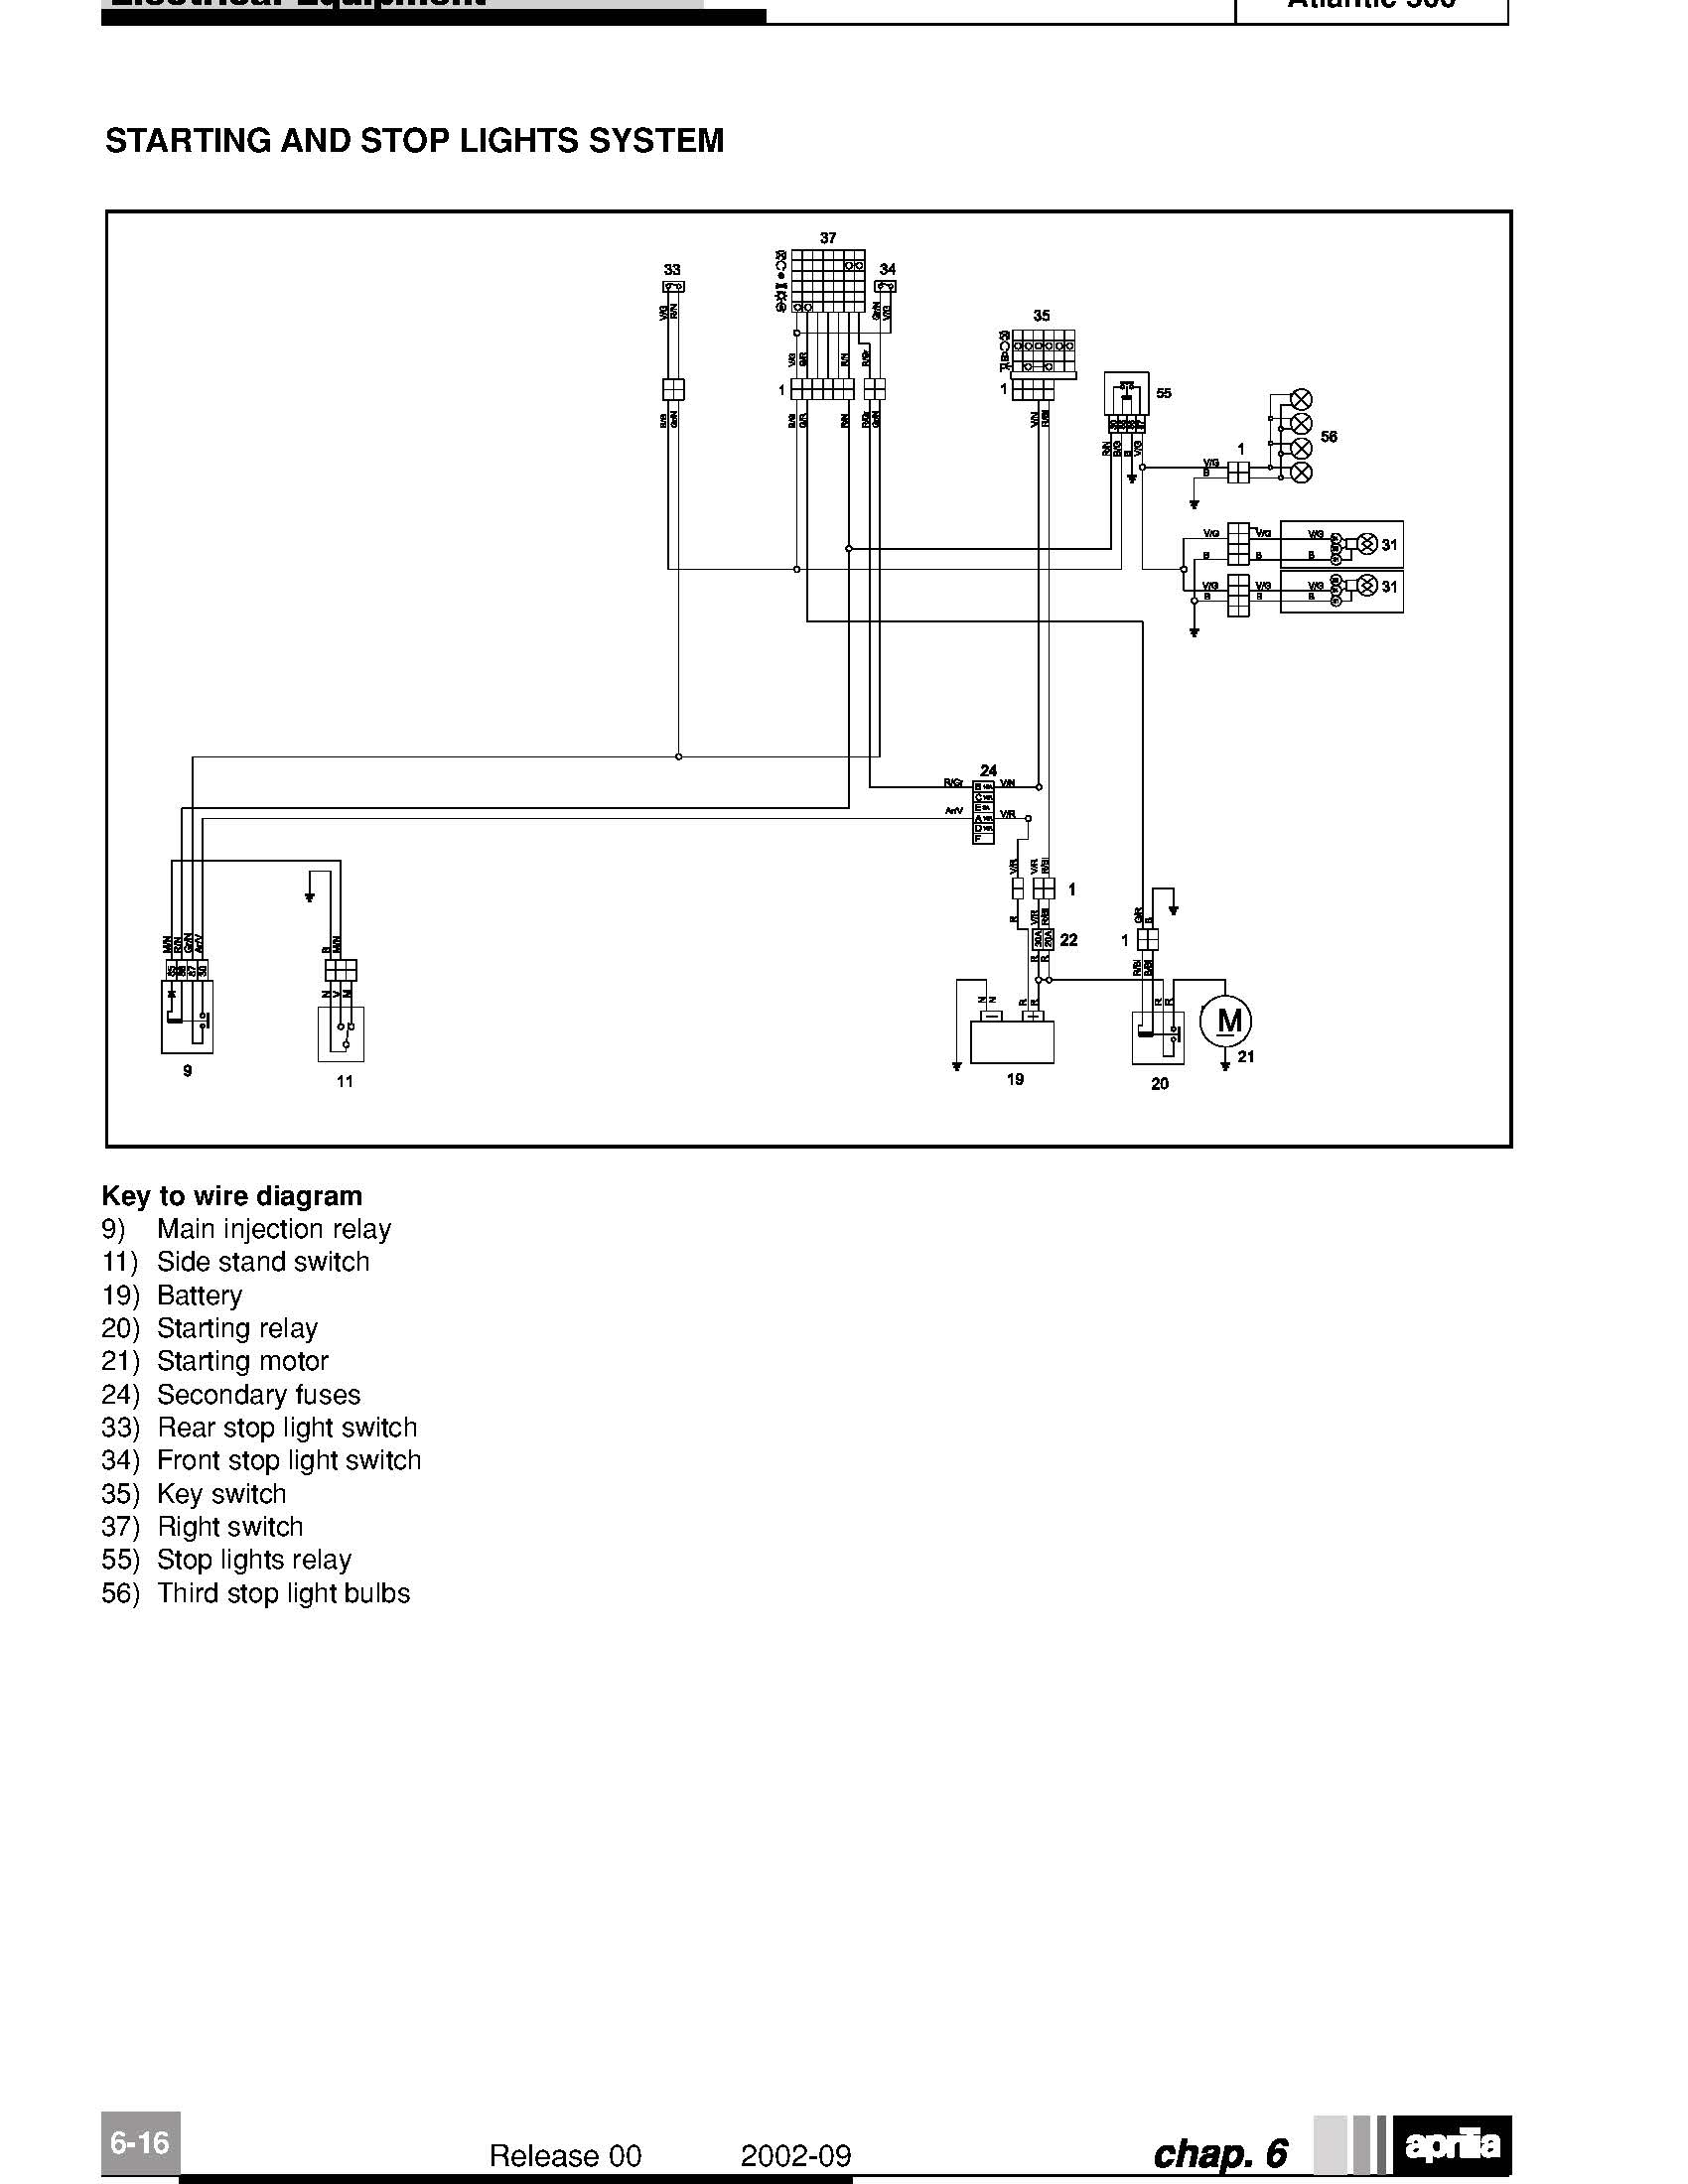 key switch wiring diagram lighting deutz 2016 security light a and medium resolution of rewiring the relevant wires to non alarm setup for starter